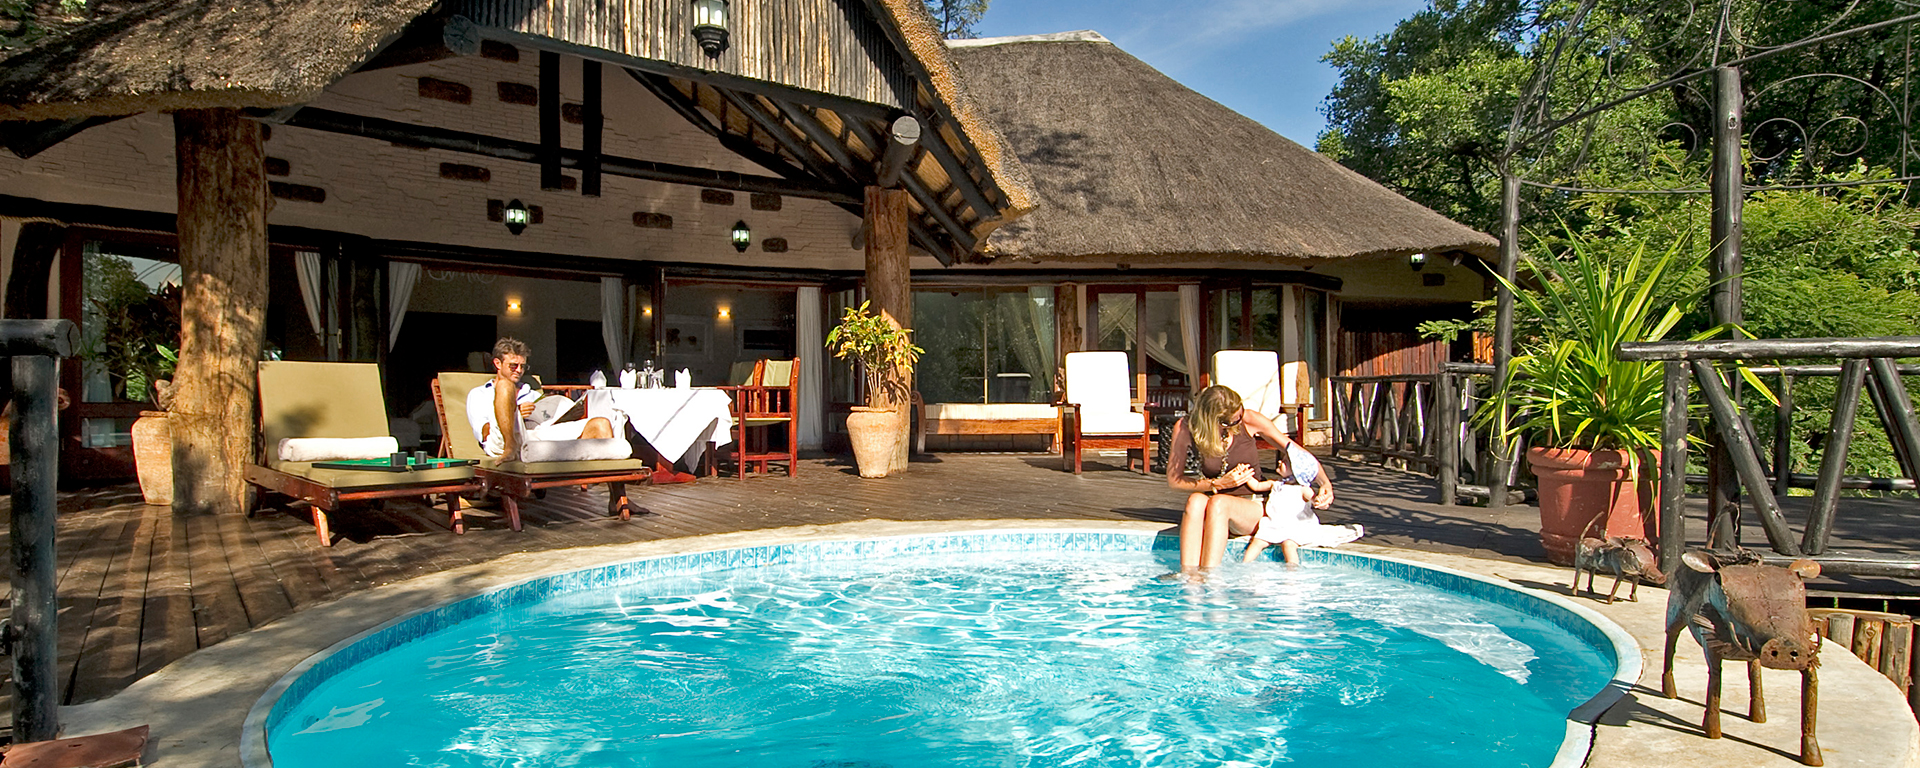 Sanctuary Chuma House is ideal for families wanting a river-side safari experience, close to Victoria Falls.